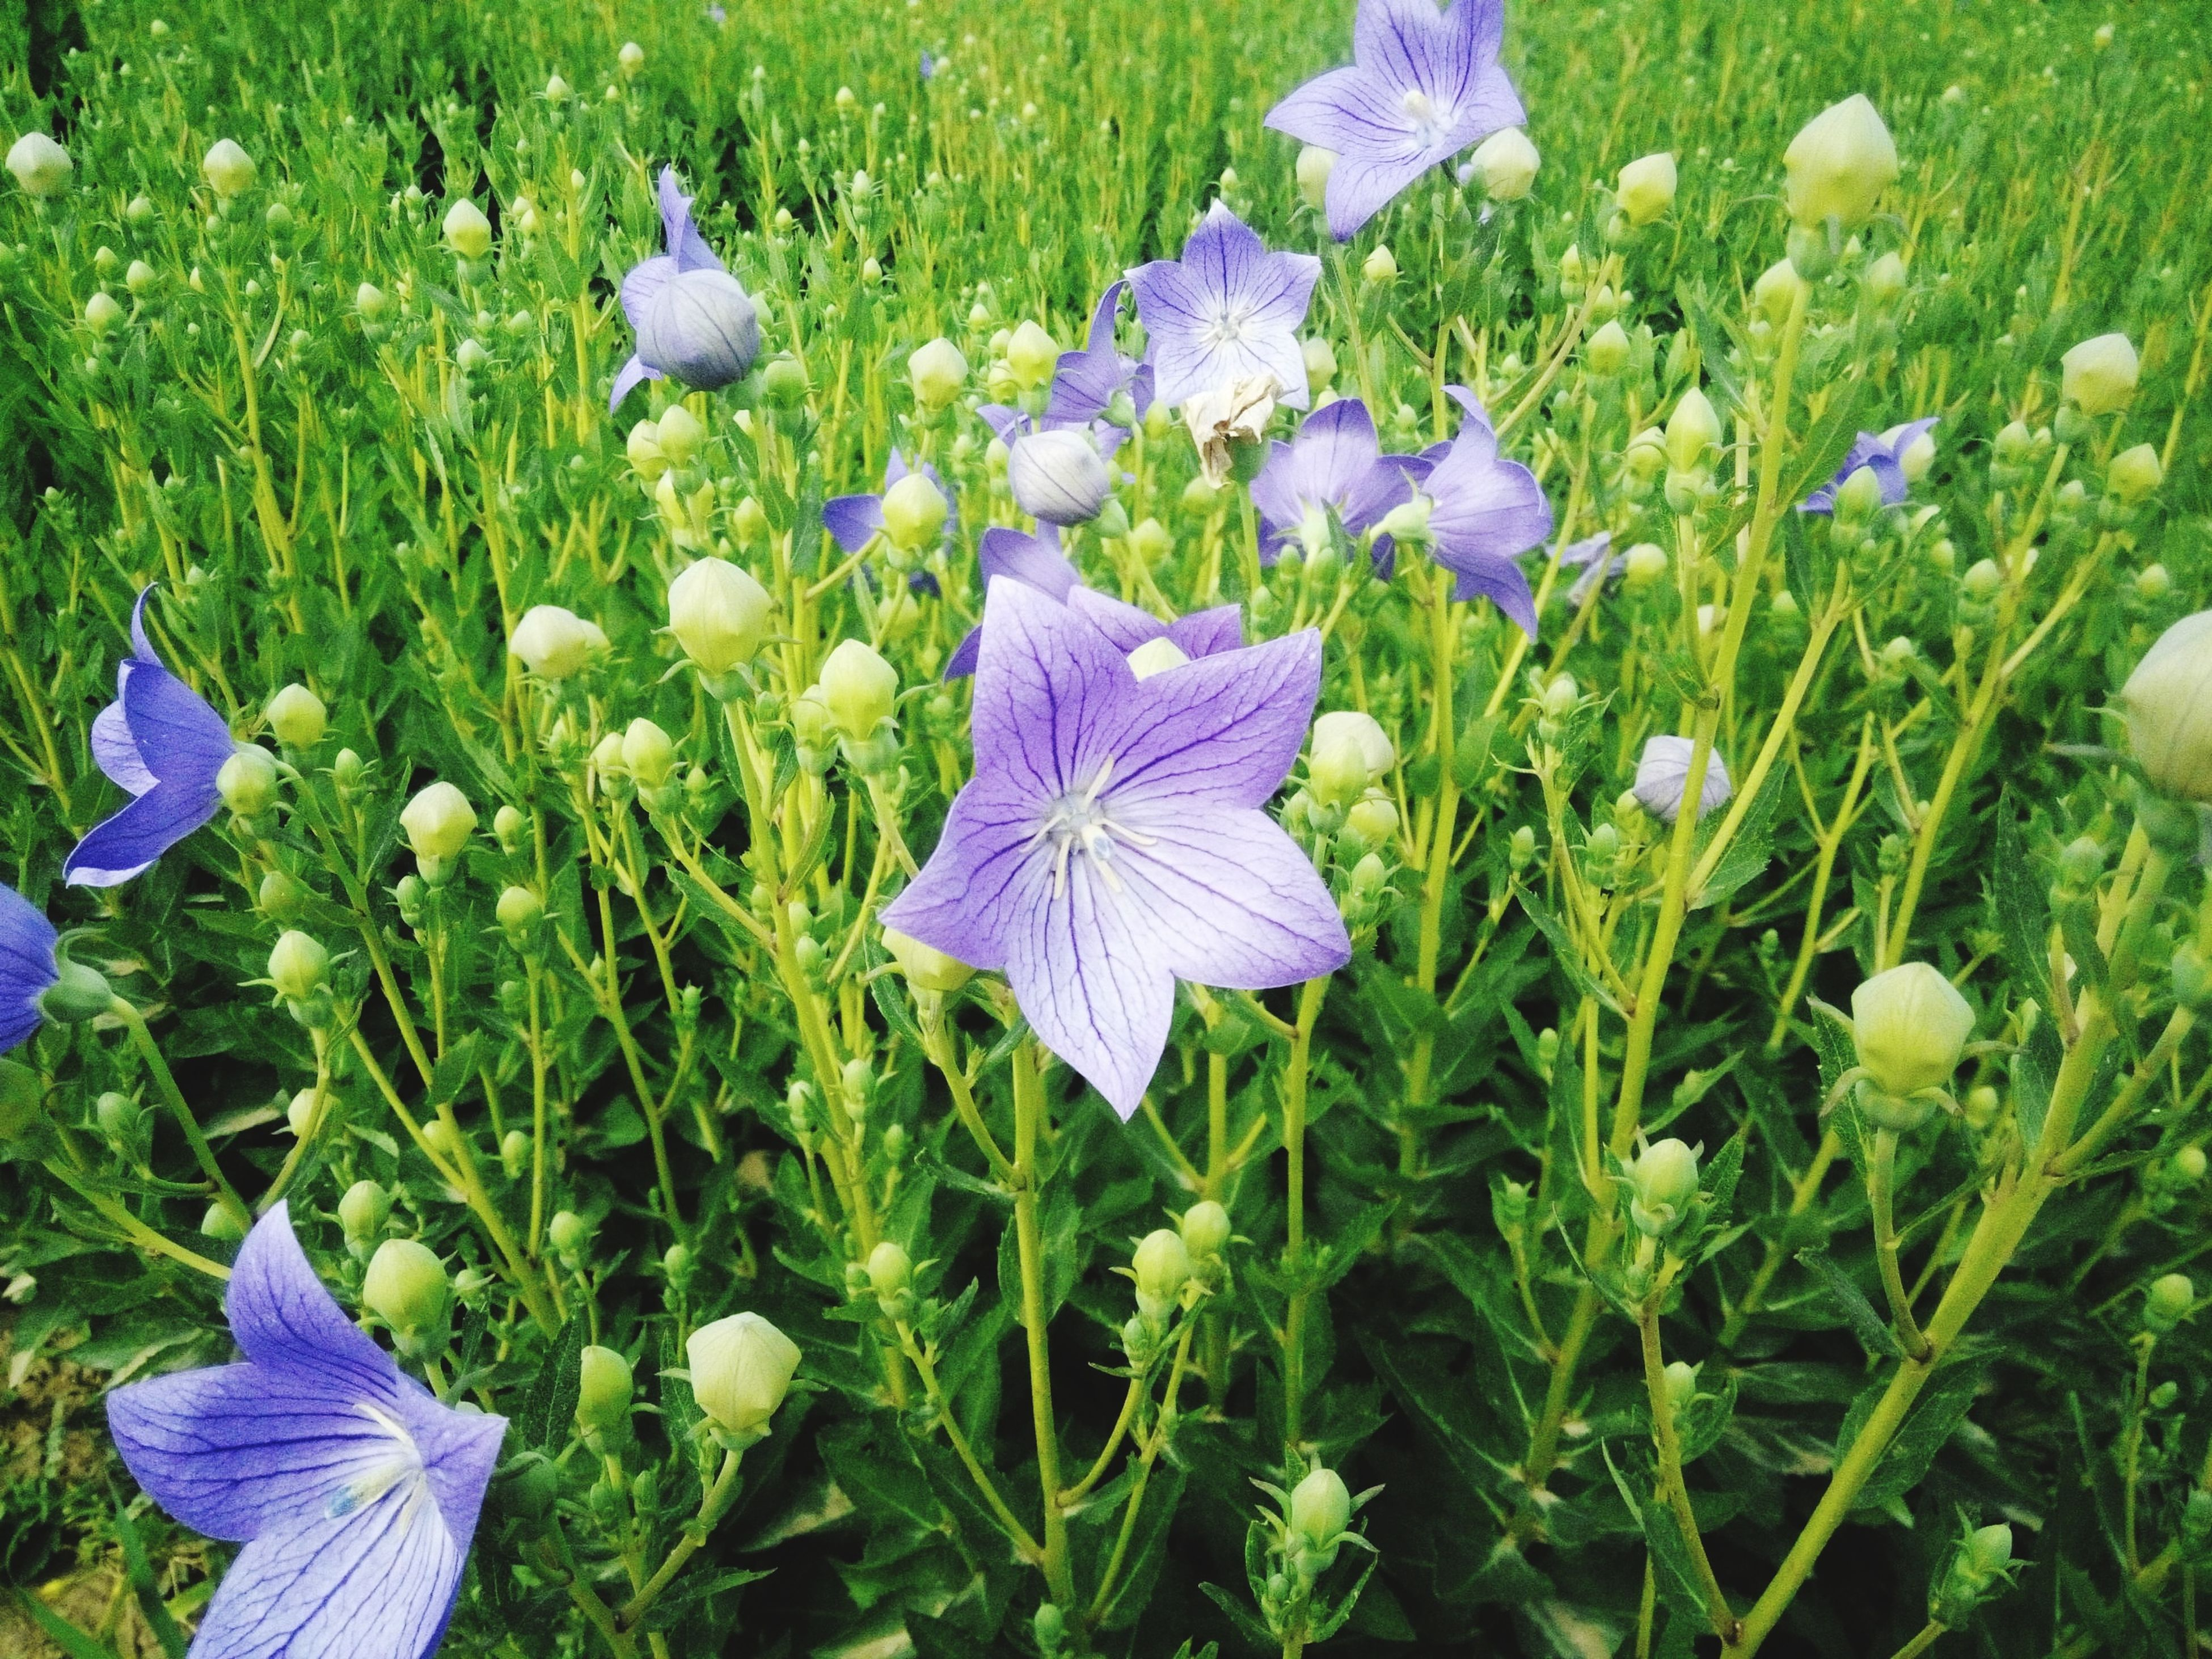 purple, flower, blue, fragility, field, freshness, grass, growth, beauty in nature, petal, nature, plant, flower head, high angle view, blooming, green color, day, crocus, close-up, outdoors